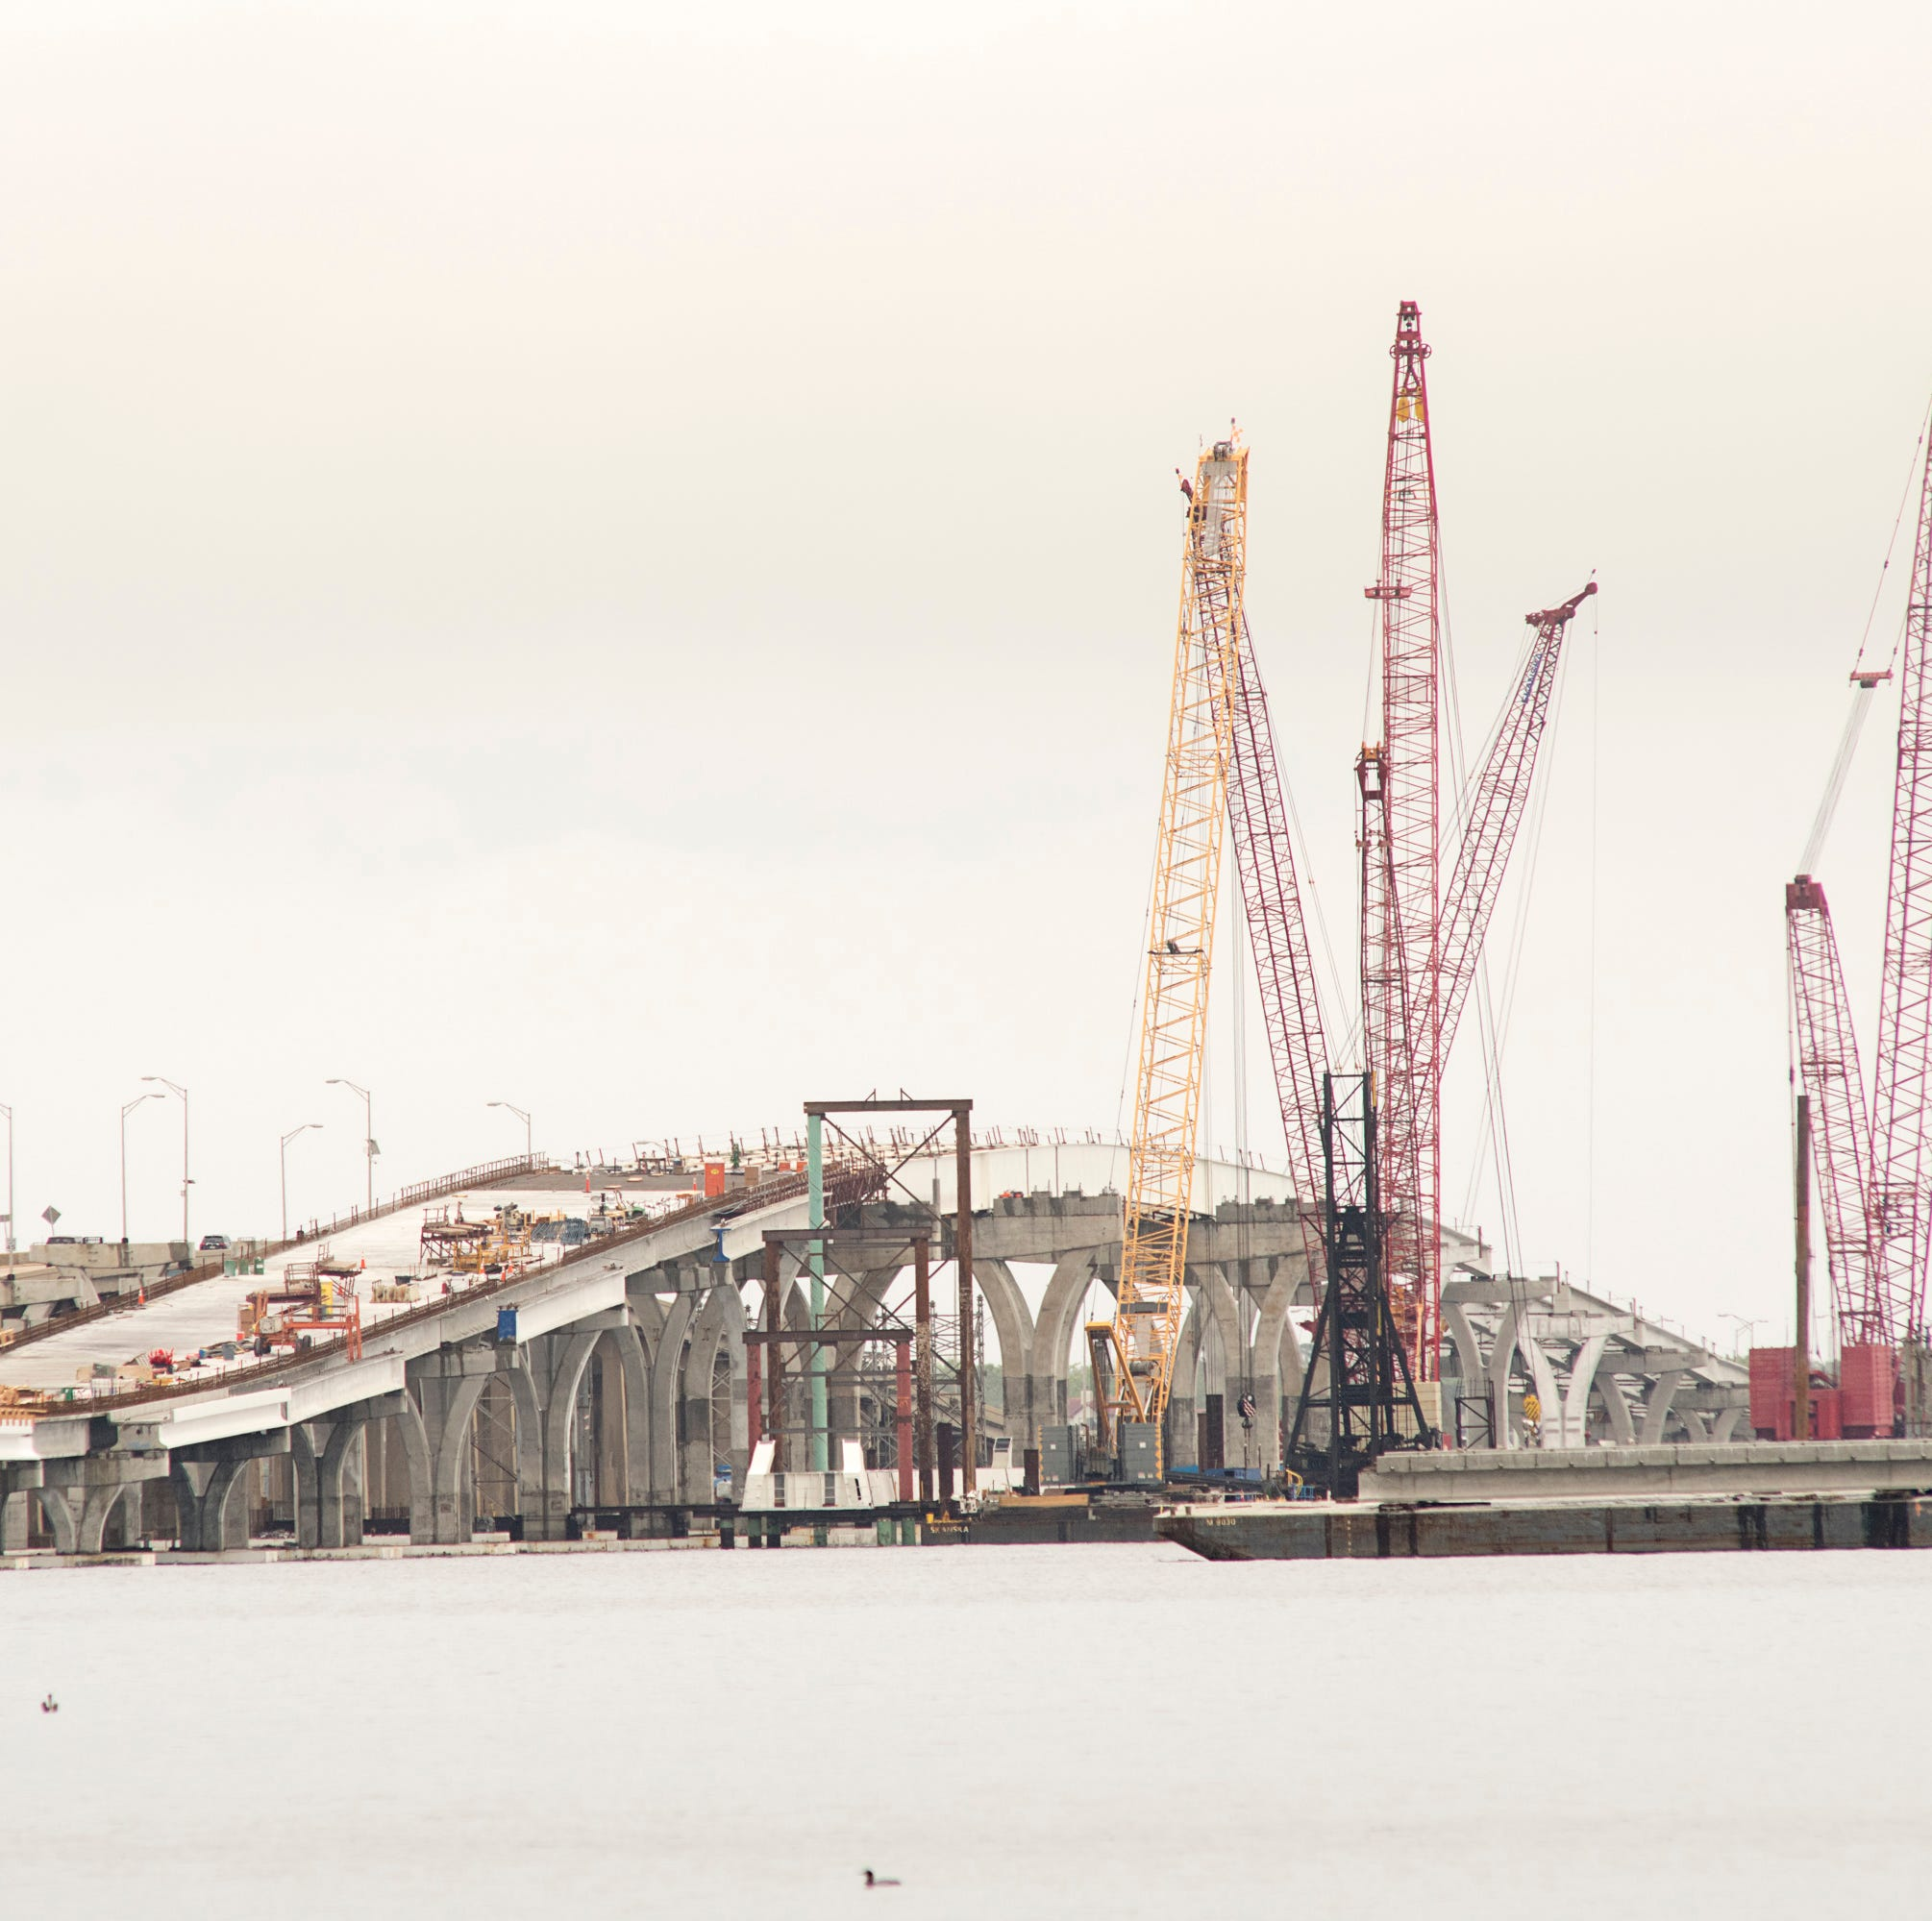 Pensacola Bay Bridge project approaching milestones in effort to finish first span